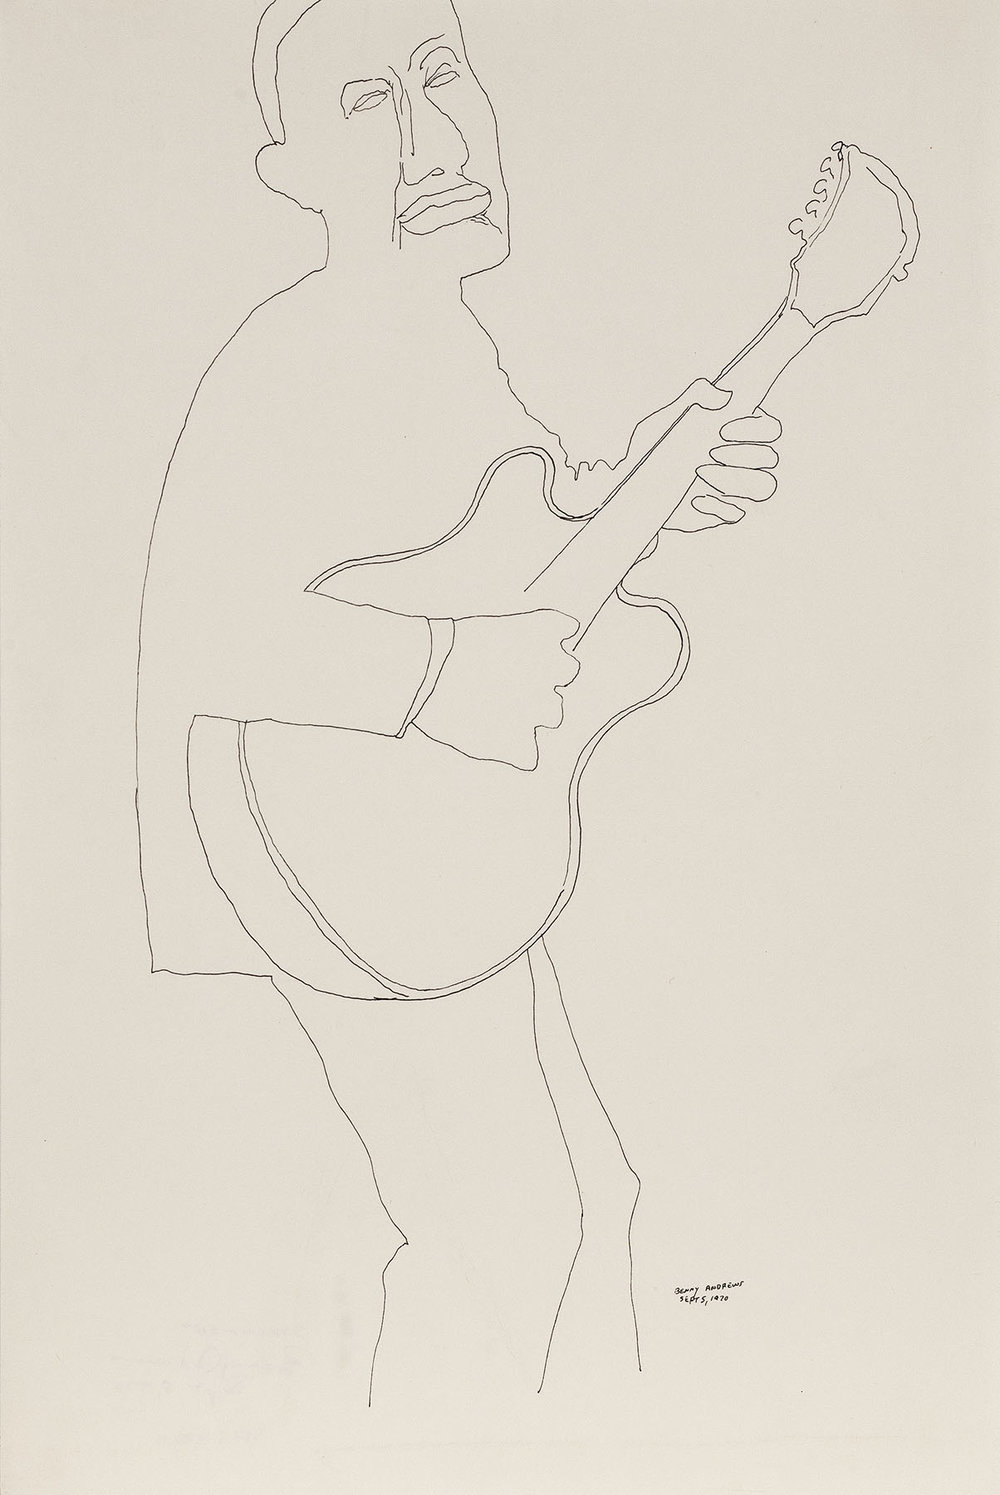 Strummer (Study for Symbols),  1970 pen and ink on paper 18 x 12""